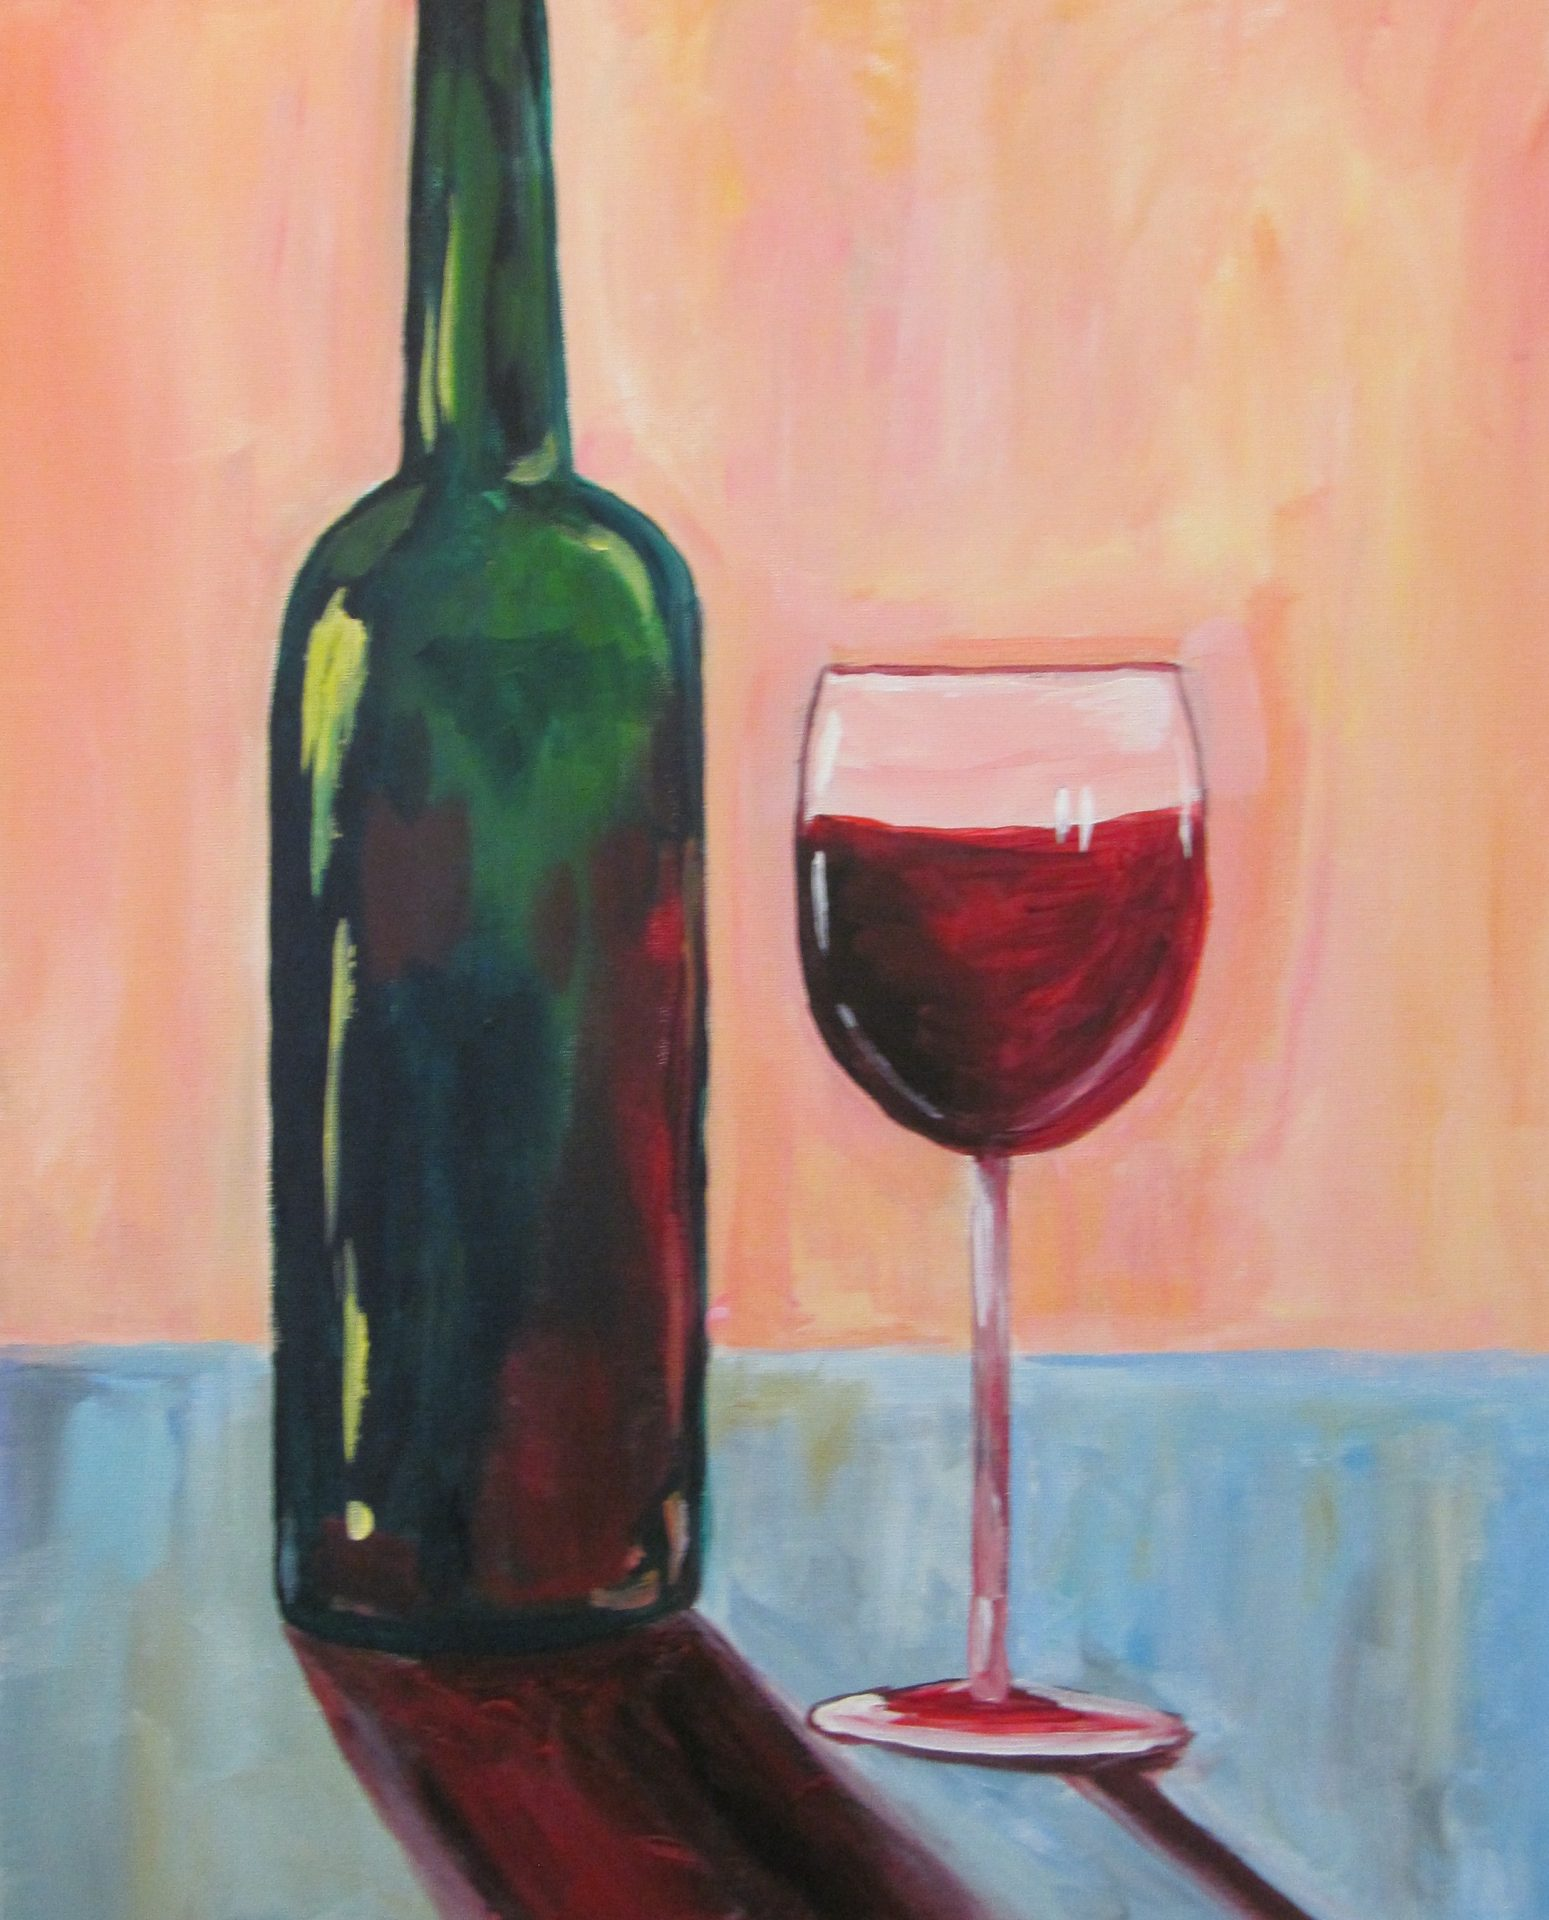 Cocktails and canvas wine bottle study visarts for Can acrylic paint be used on glass bottles